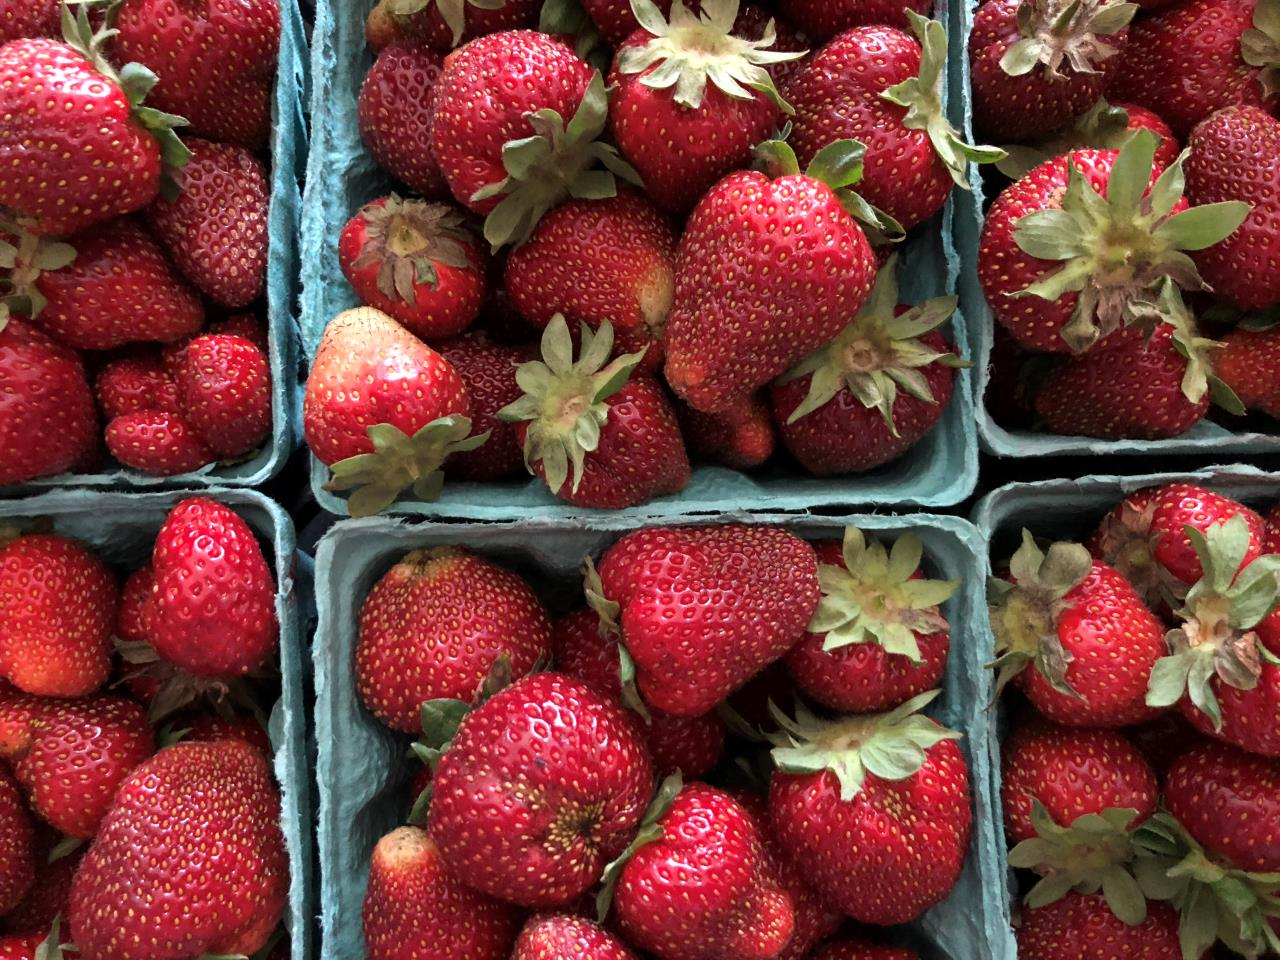 Strawberry Haul 2018 Edition – New Jersey – Mayernik Kitchen